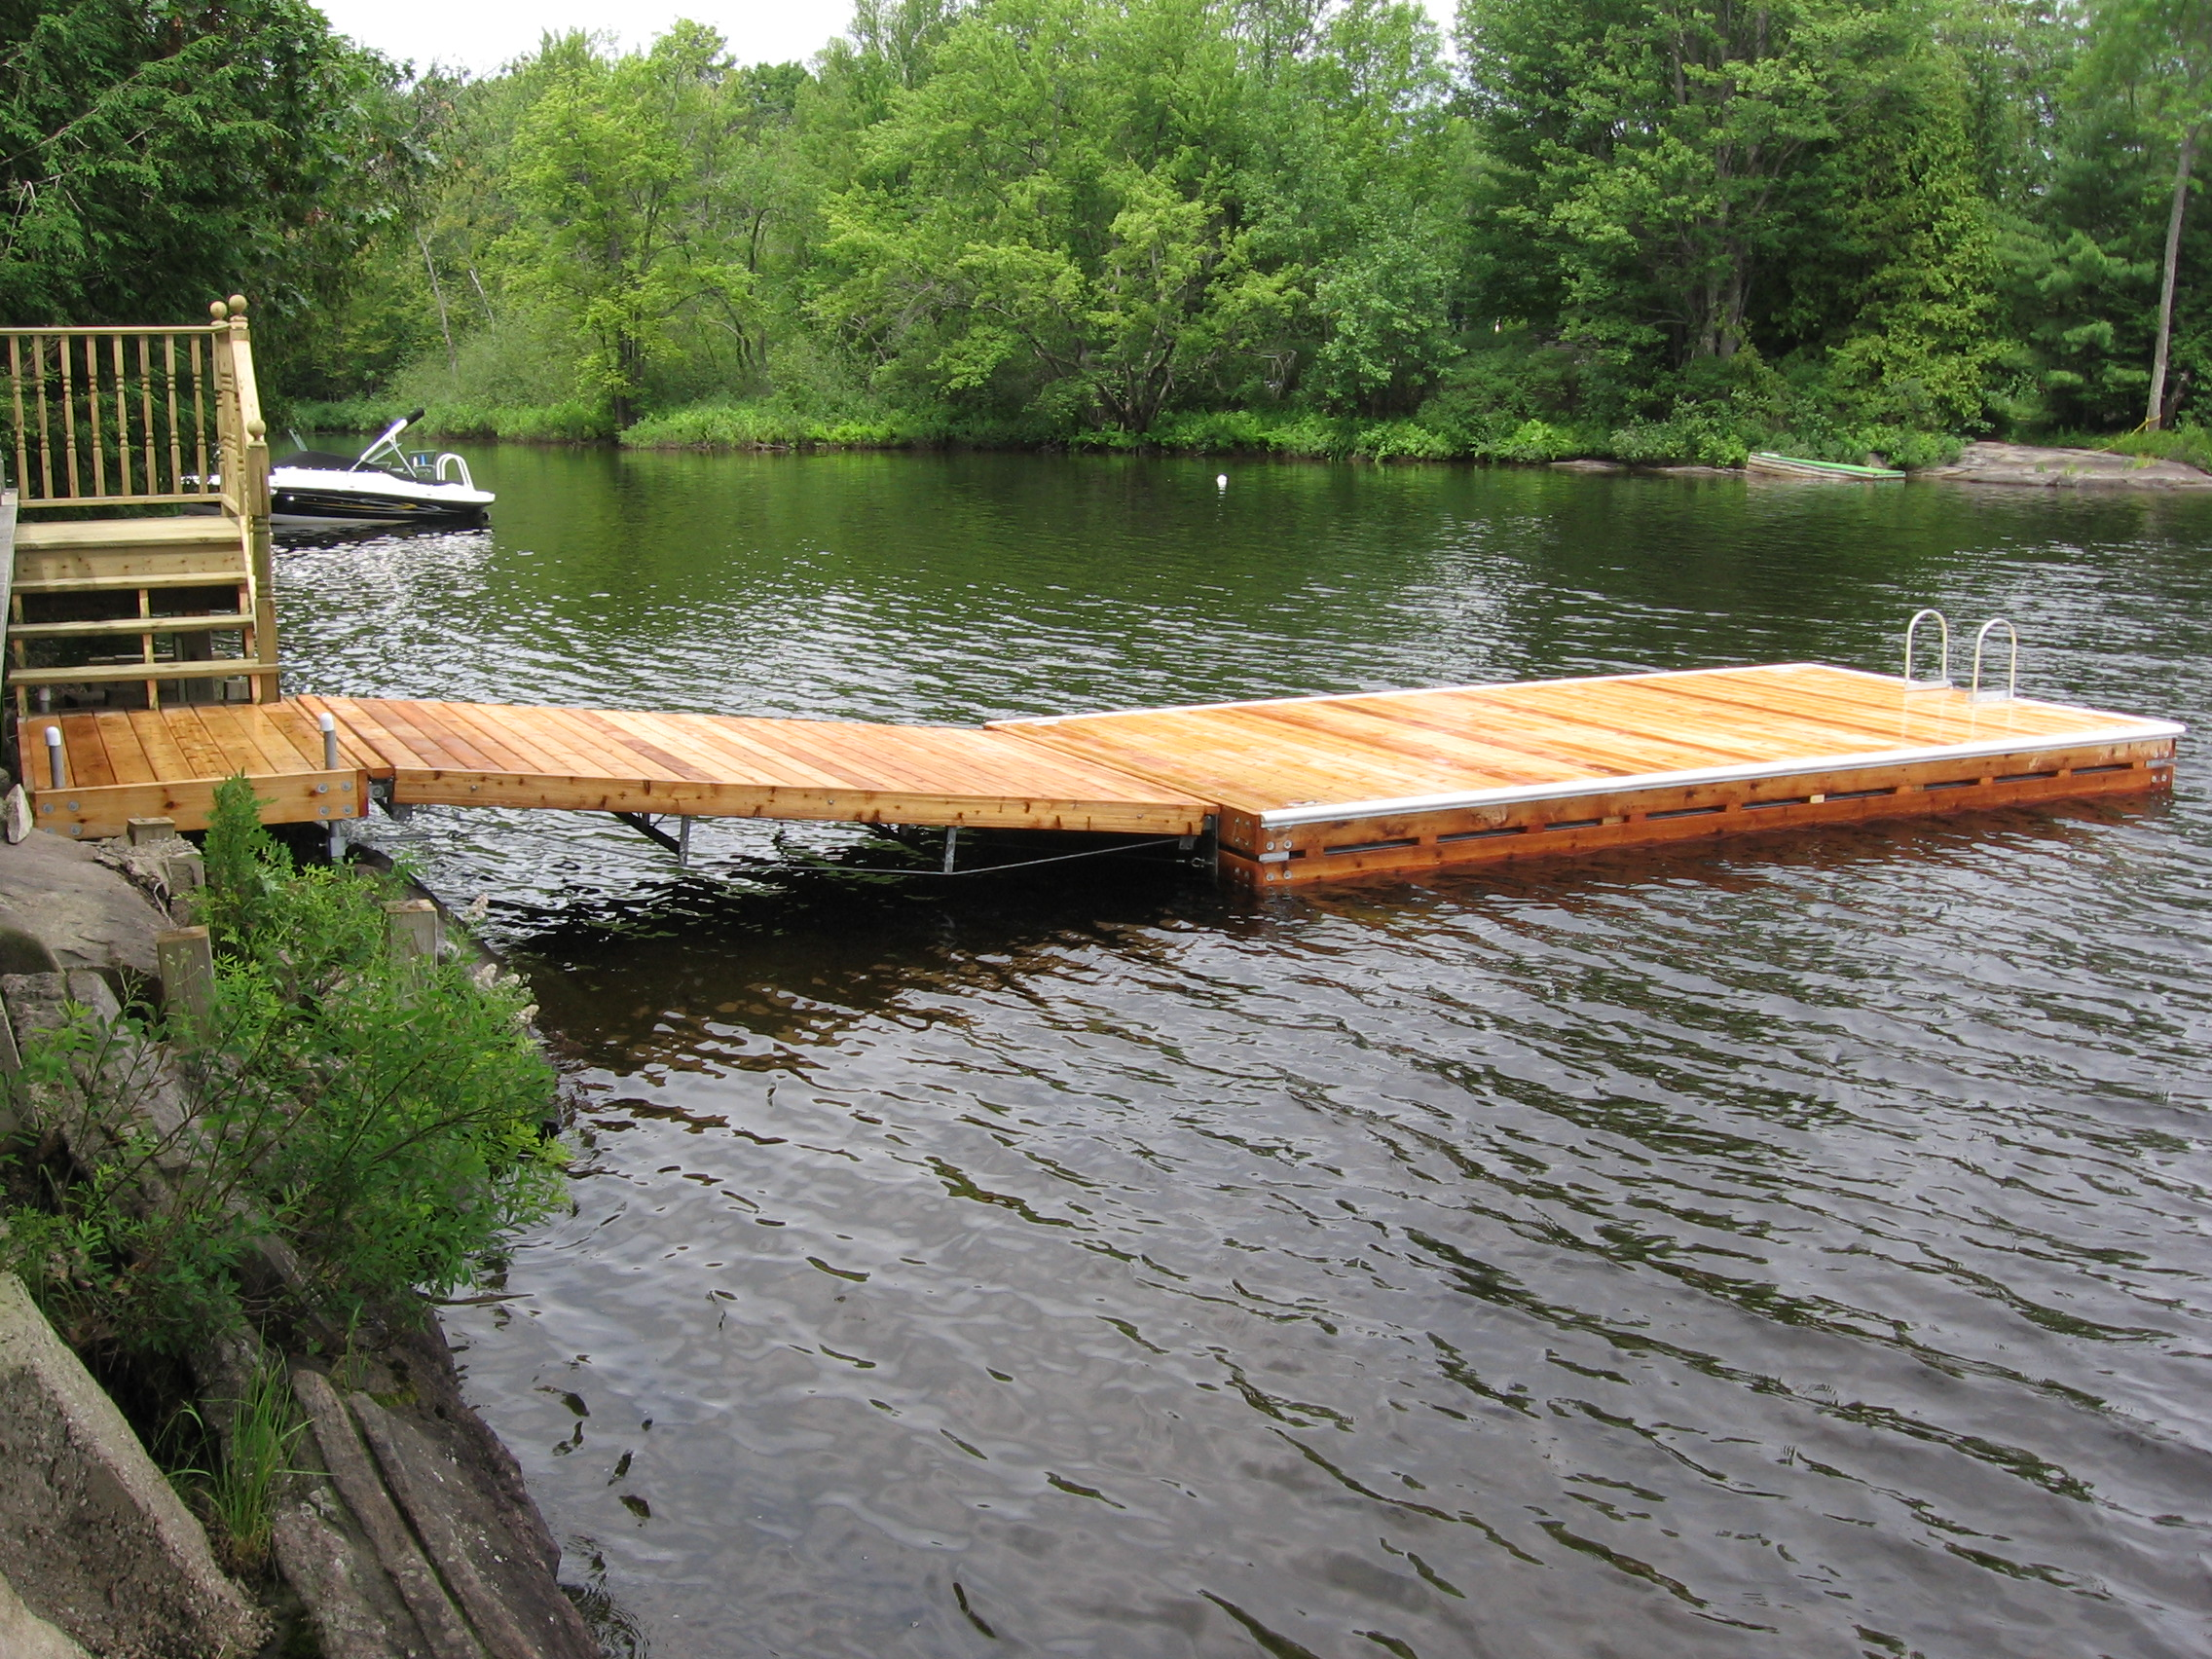 muskoka docks innovative docking systems design construction. Black Bedroom Furniture Sets. Home Design Ideas